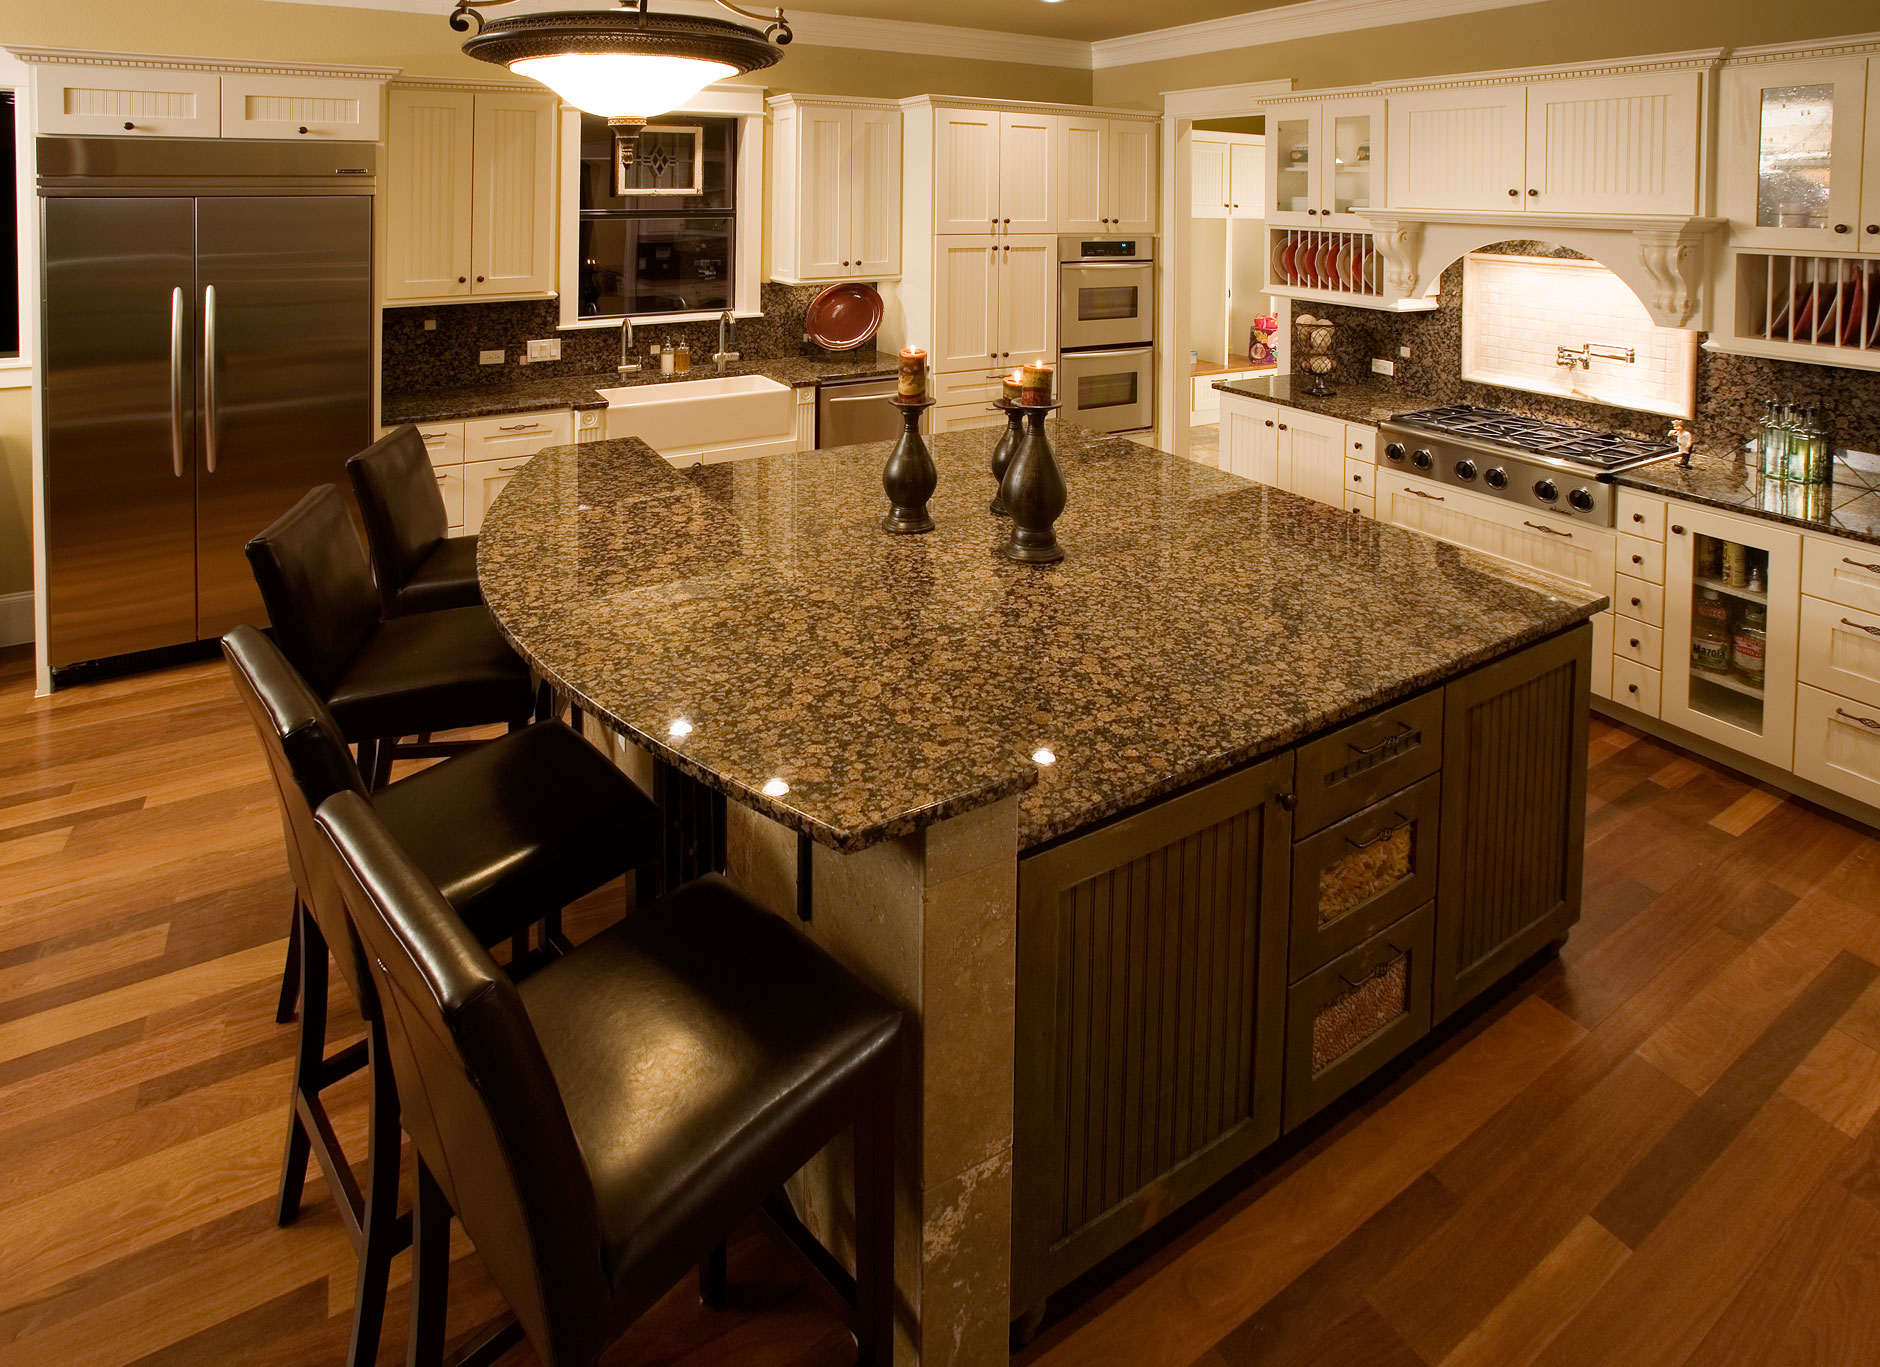 Kitchen Cabinet 7 C101 Wide - OE5, IE5, FP3/8 BD cabinet doors in Soft Maple, Paint Grade frame with MDF Panel